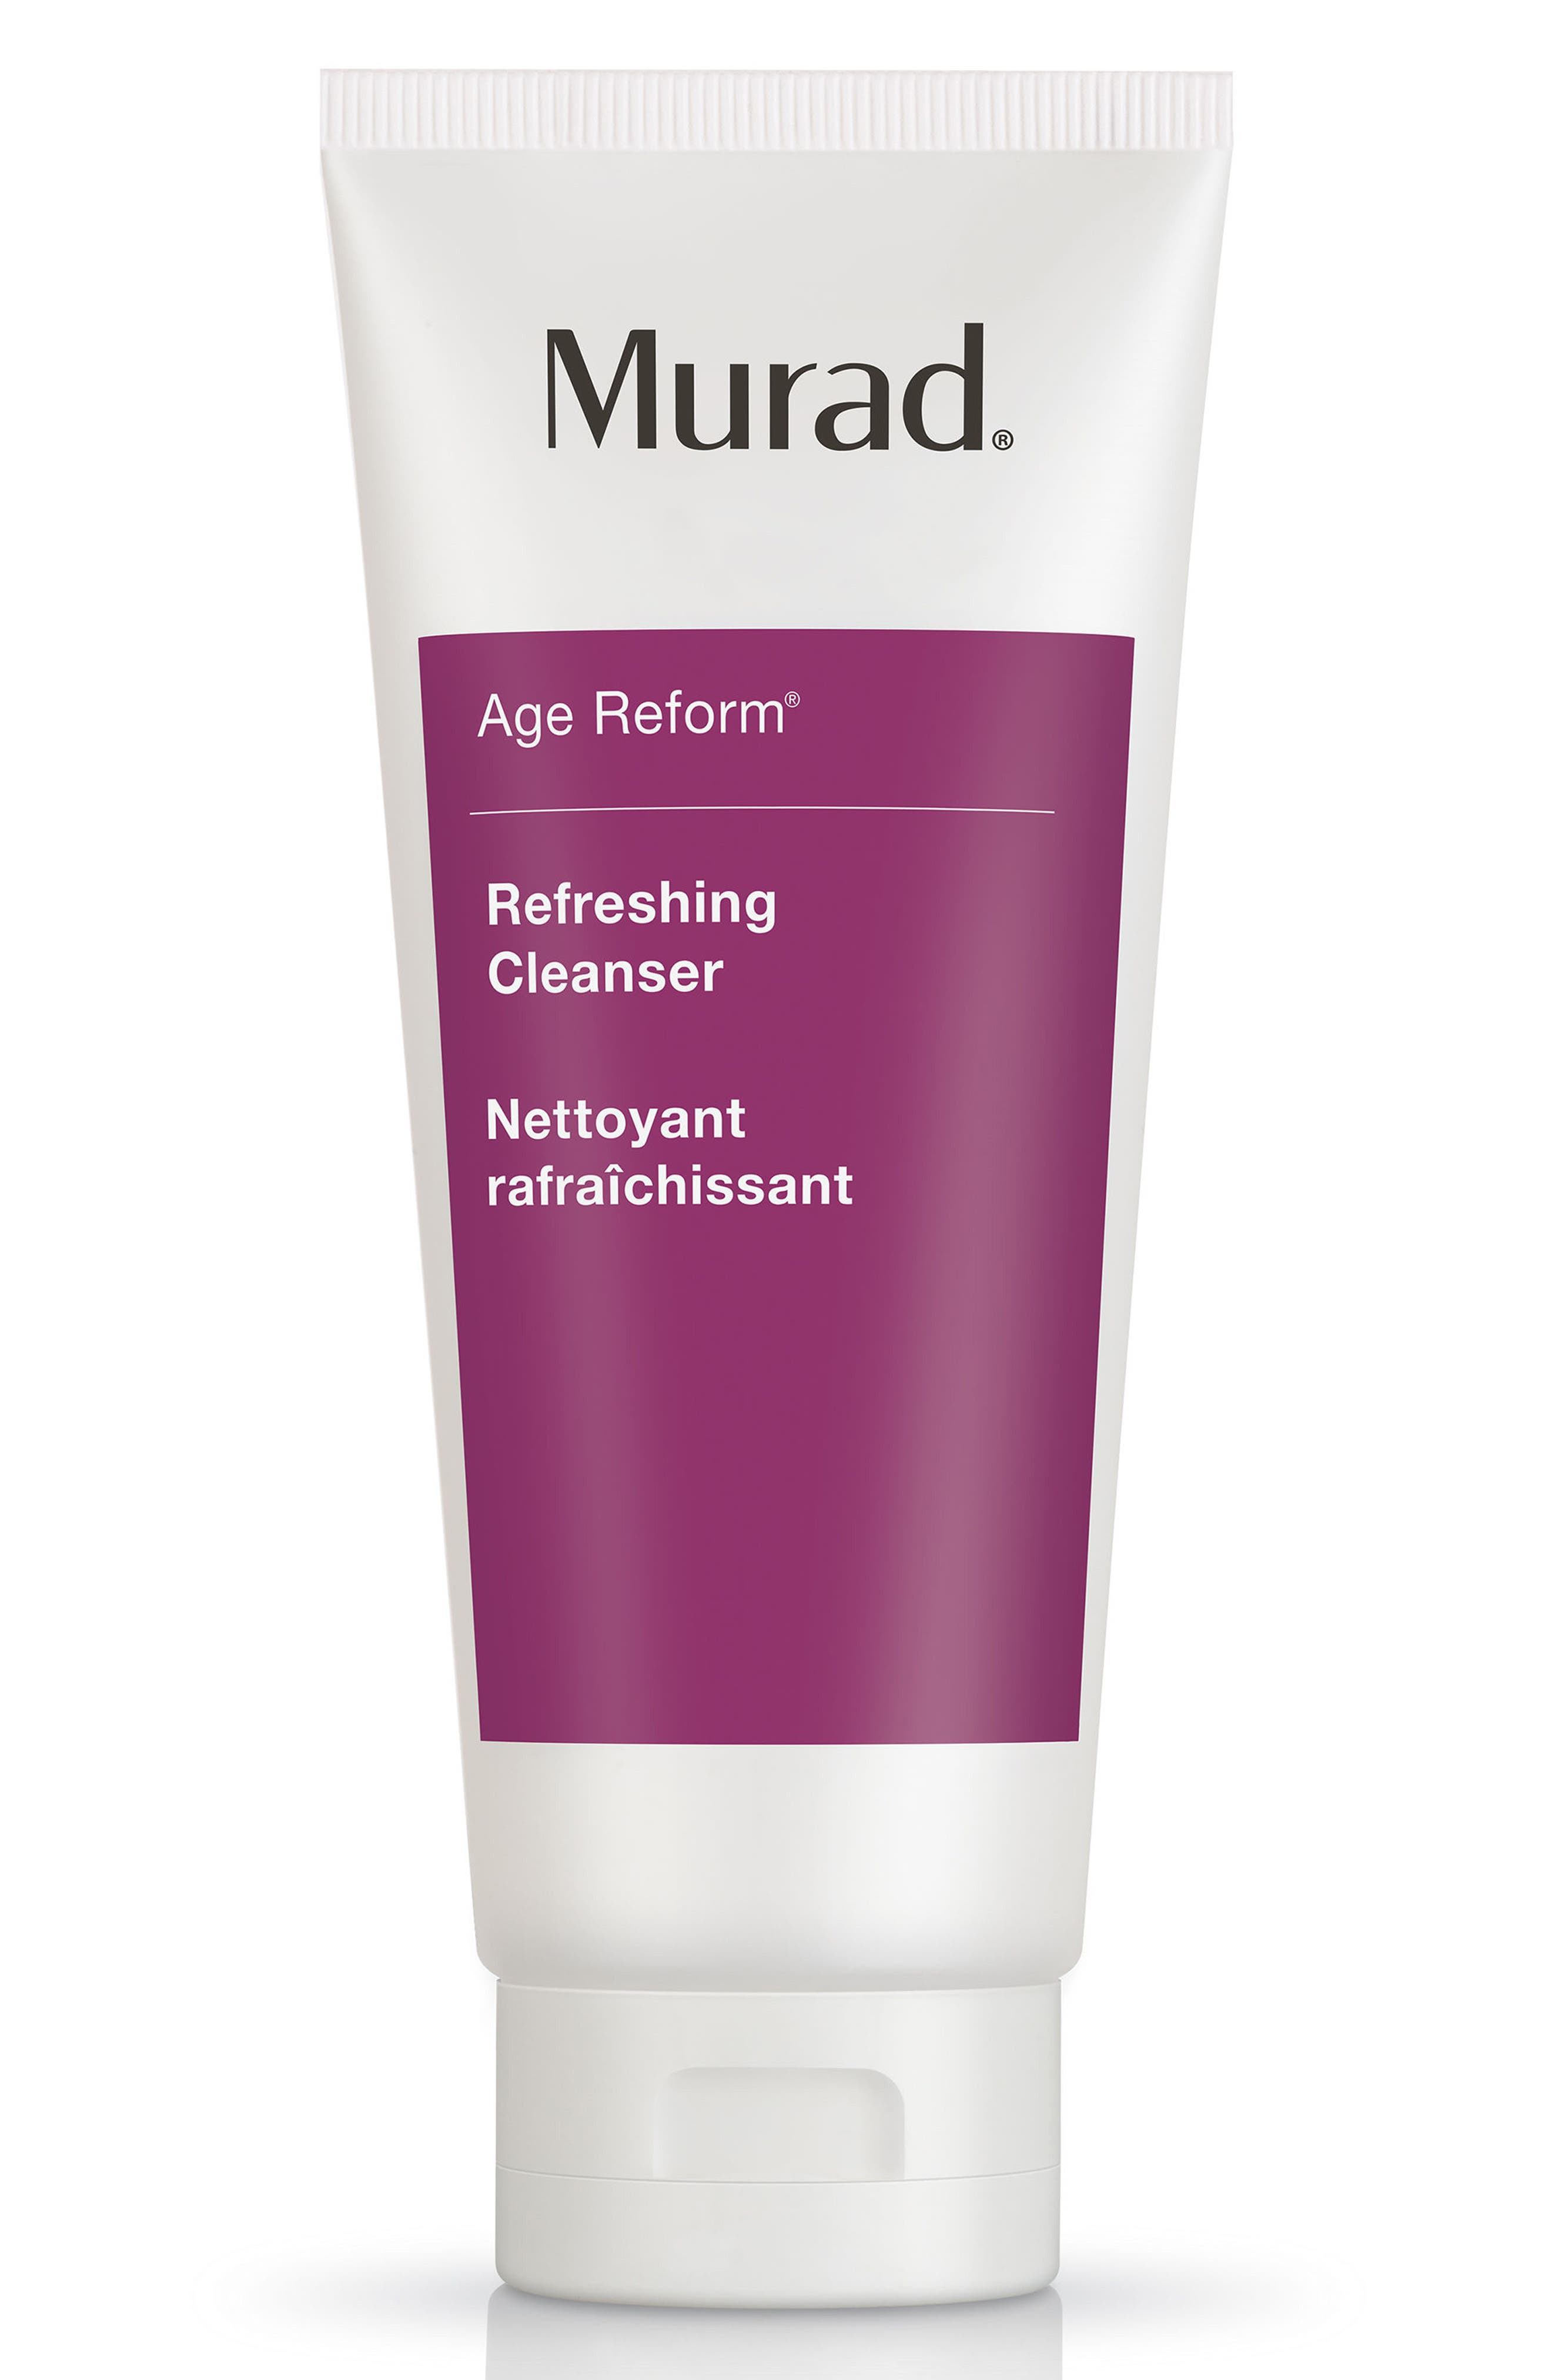 Murad® Refreshing Cleanser